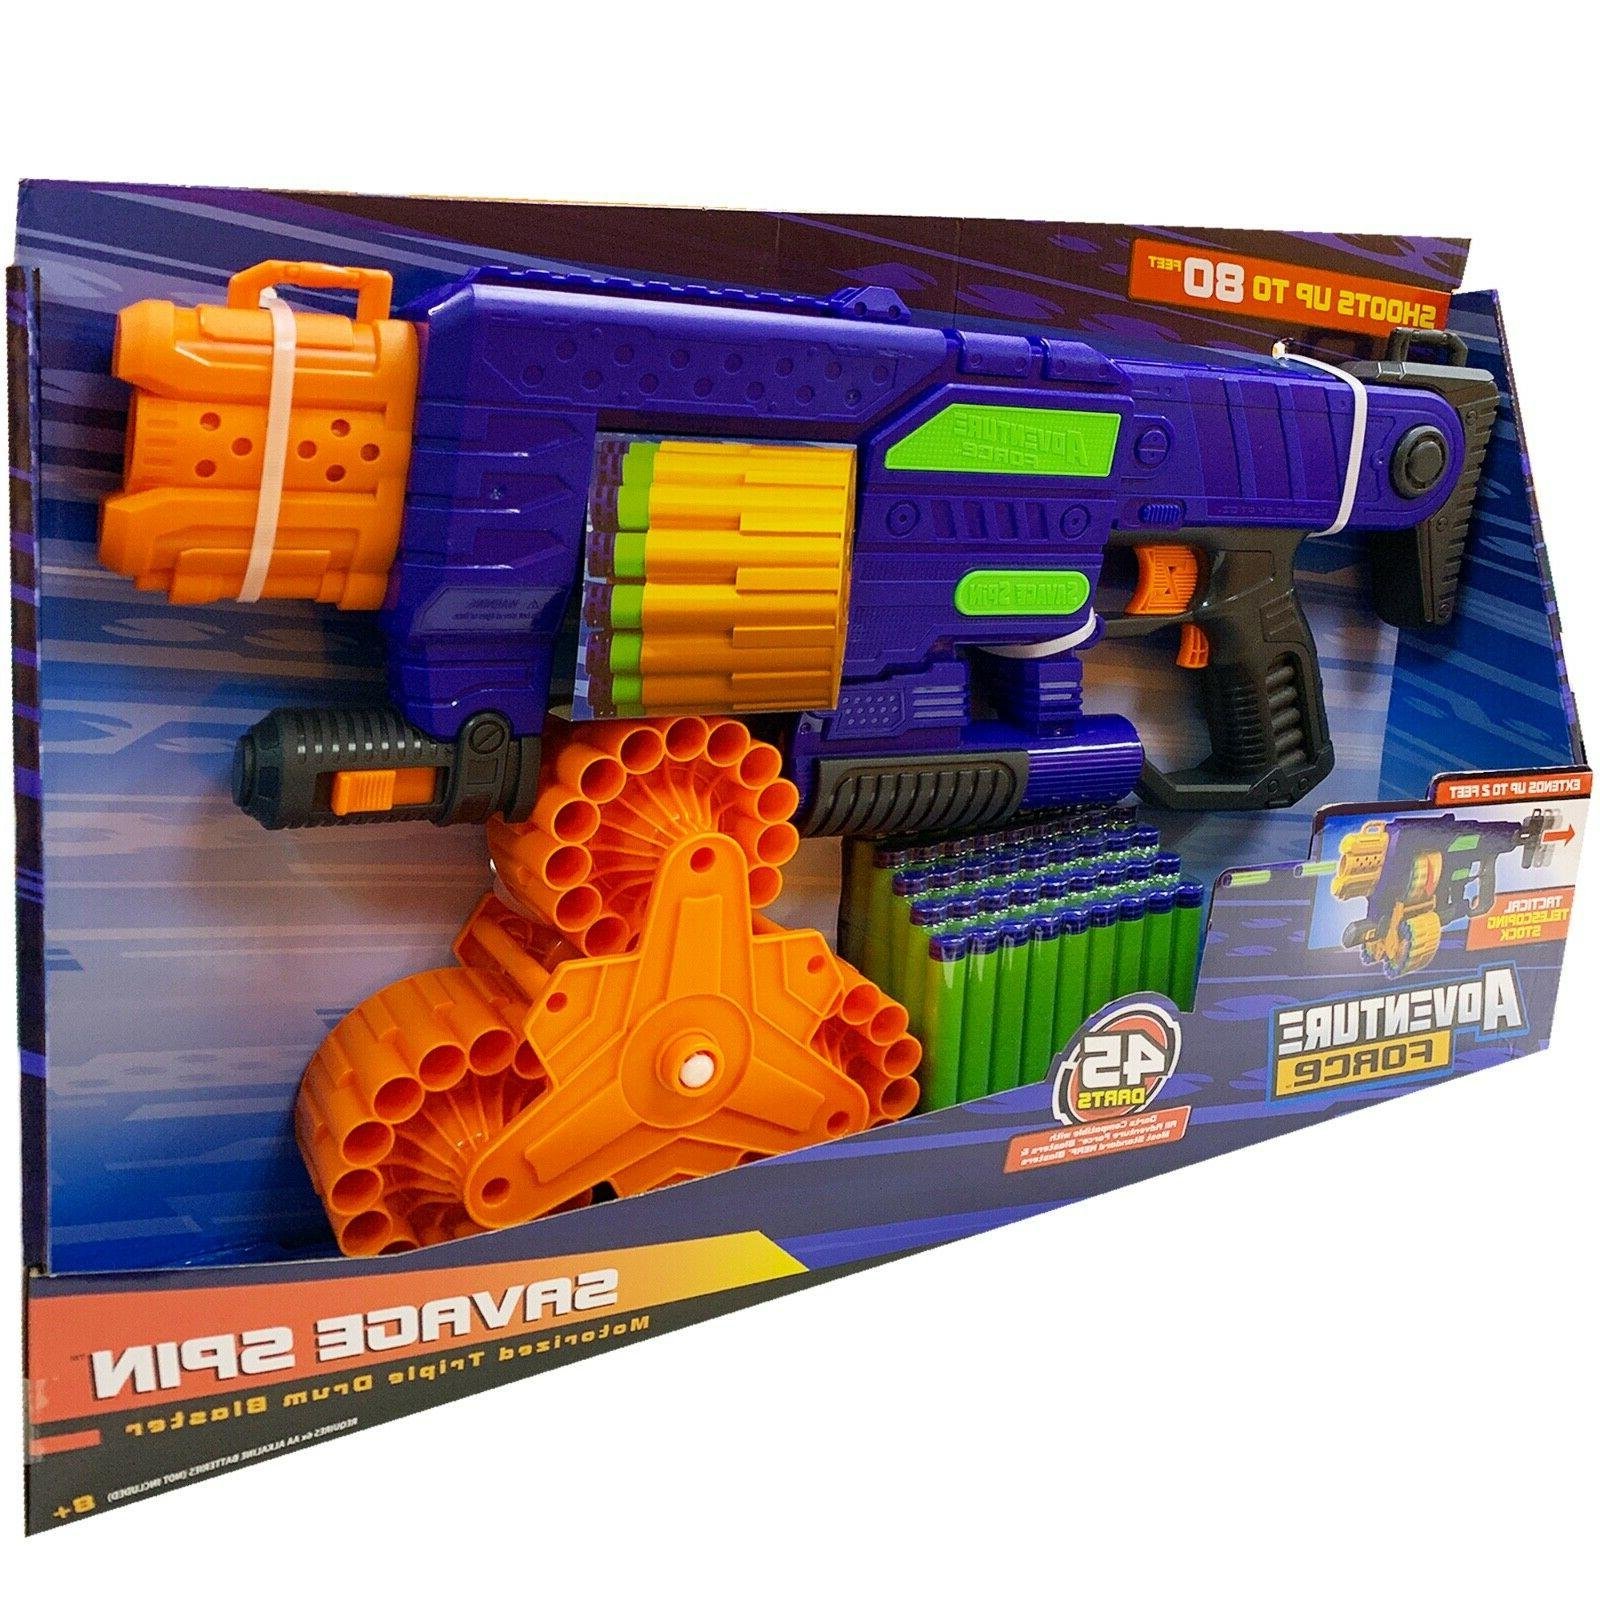 New Foam Compatible Machine Motorized Blaster Kids Toy Refill 80ft